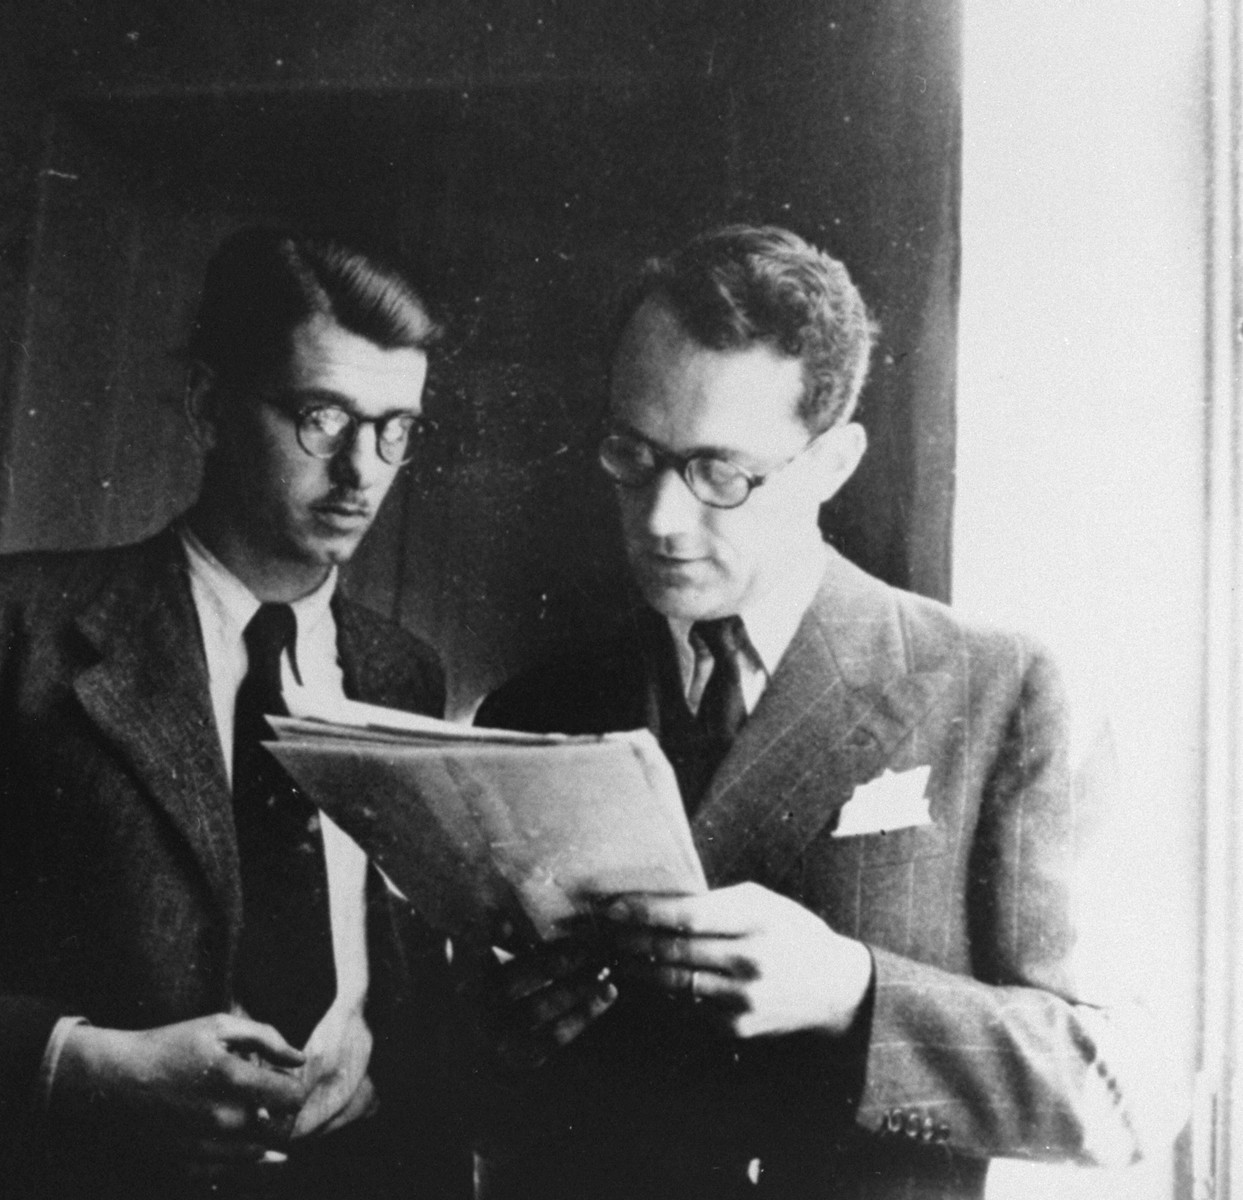 Varian Fry (right) shows a document to his associate, Daniel Benedite, in the offices of the Centre Americain de Secours.